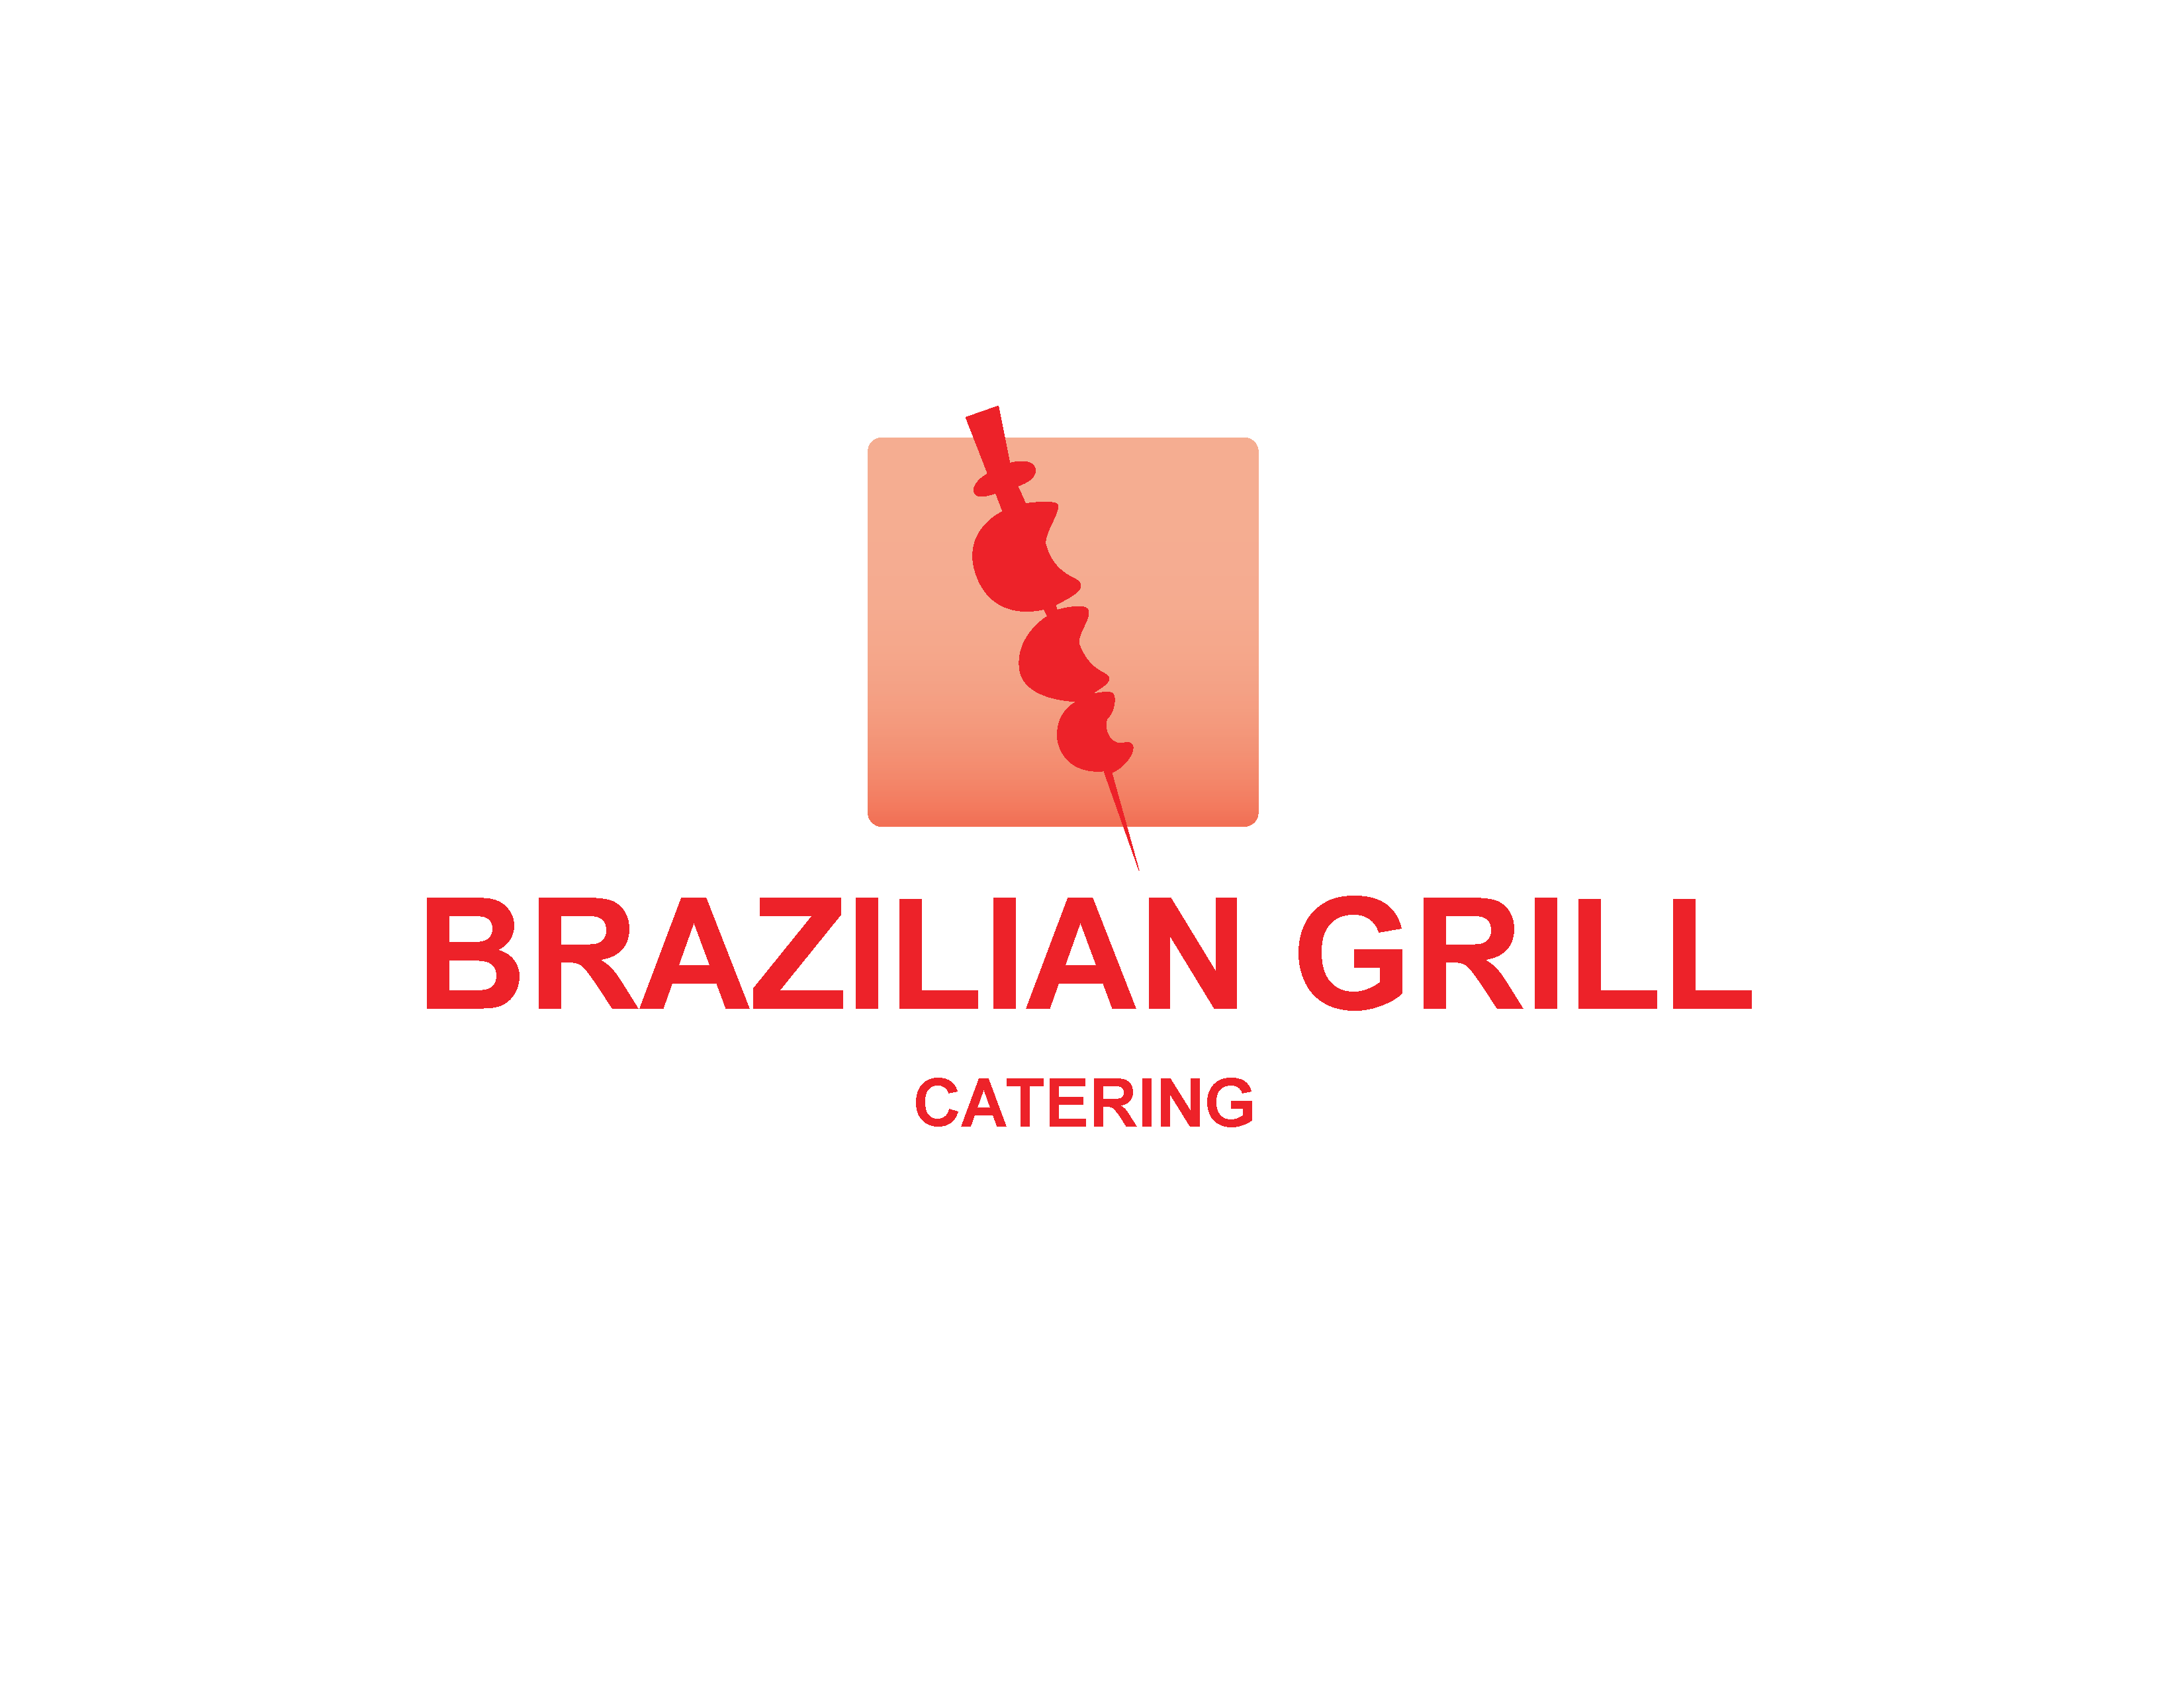 Brazilian Grill Catering